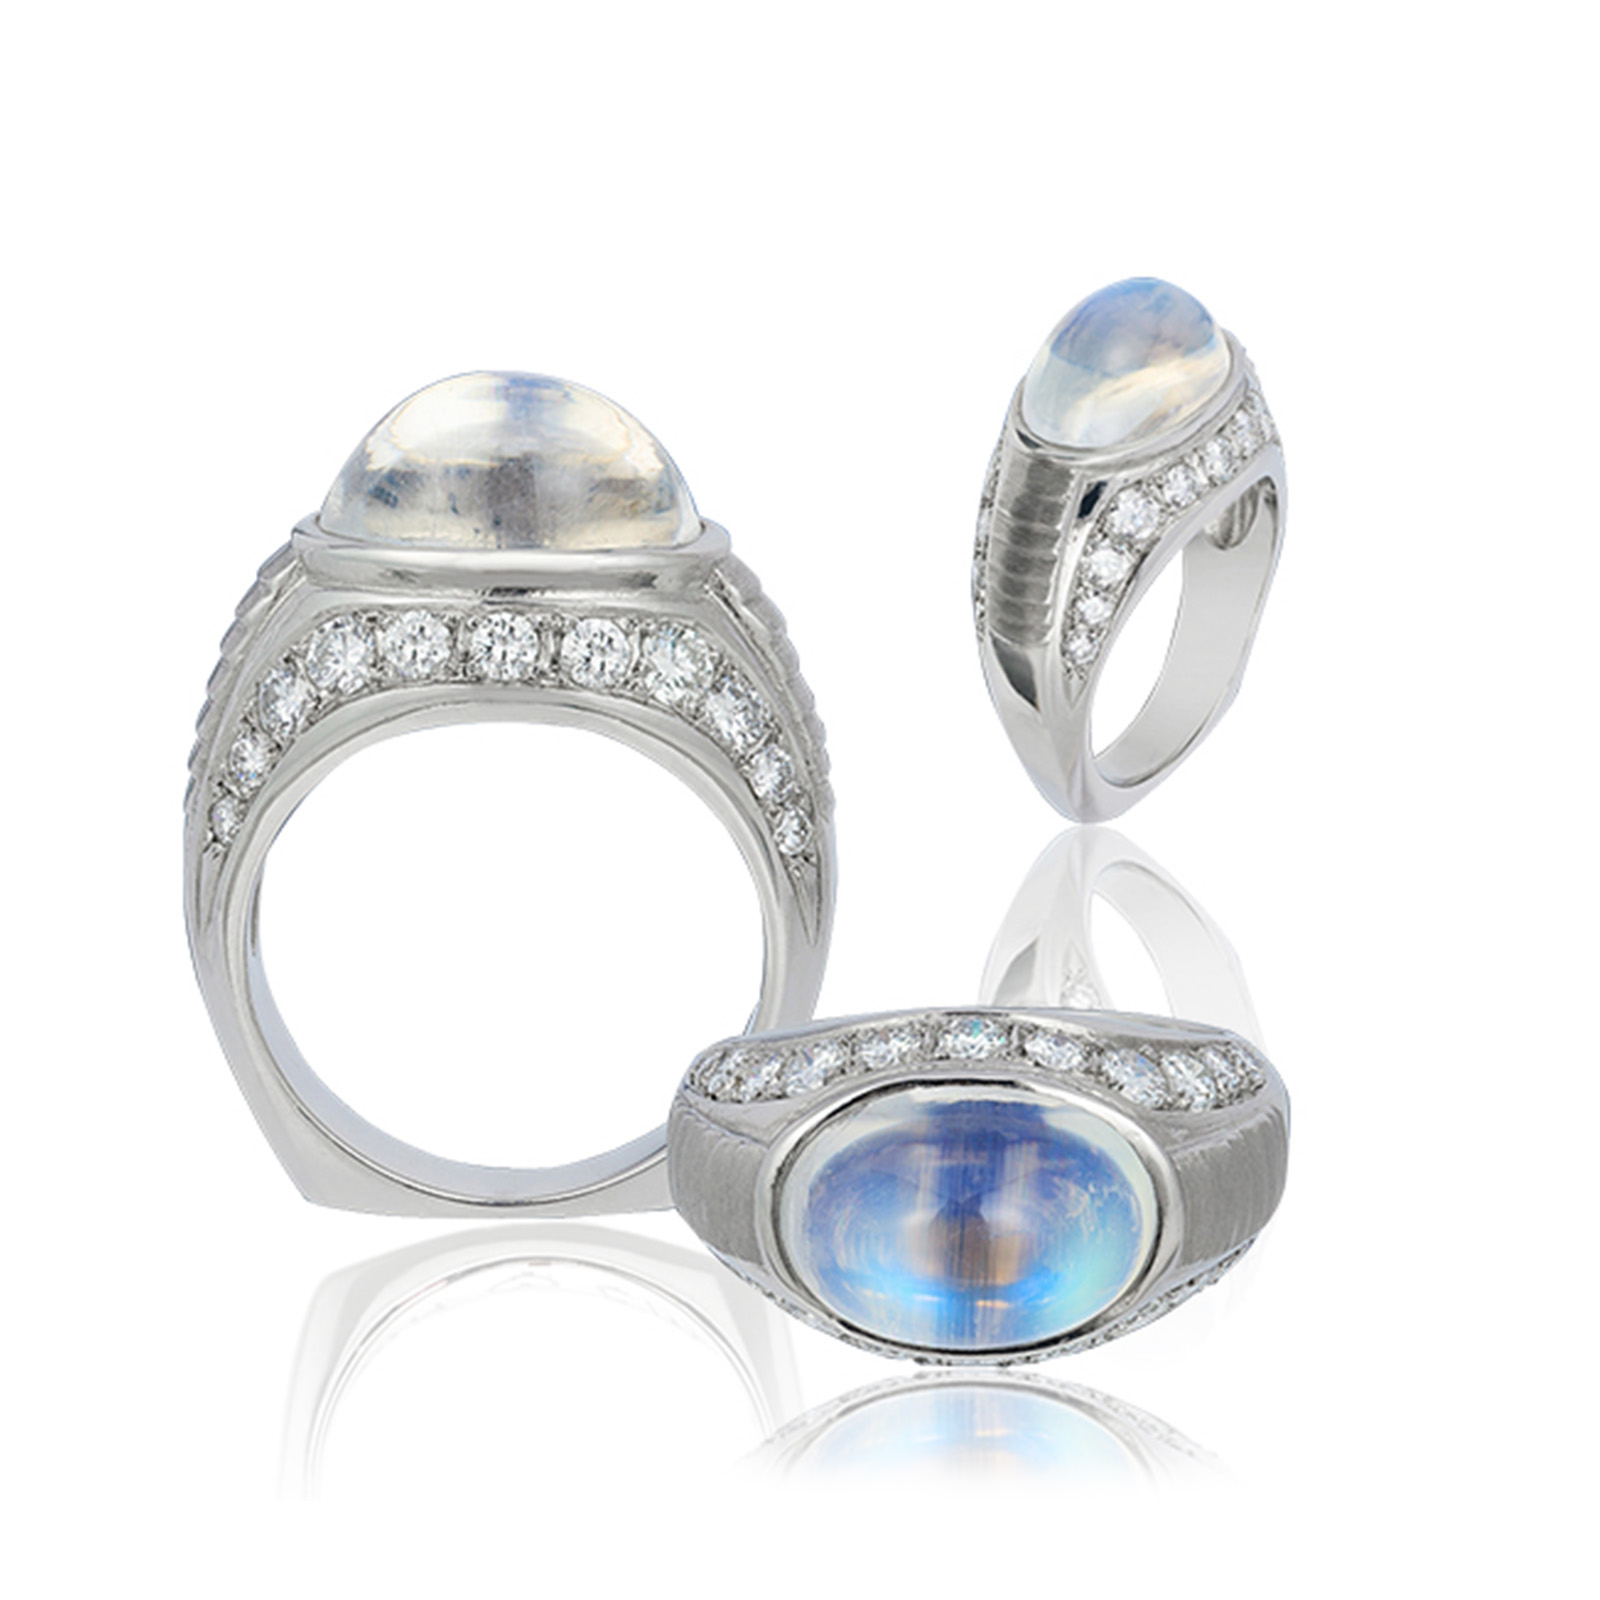 """""""Bella Blue"""" ~ Cynthia Renée full custom design platinum ring featuring 6.76 carat """"blue sheen"""" moonstone (India, natural color) accented by 11 round diamonds weighing a total of 1.05 carats."""